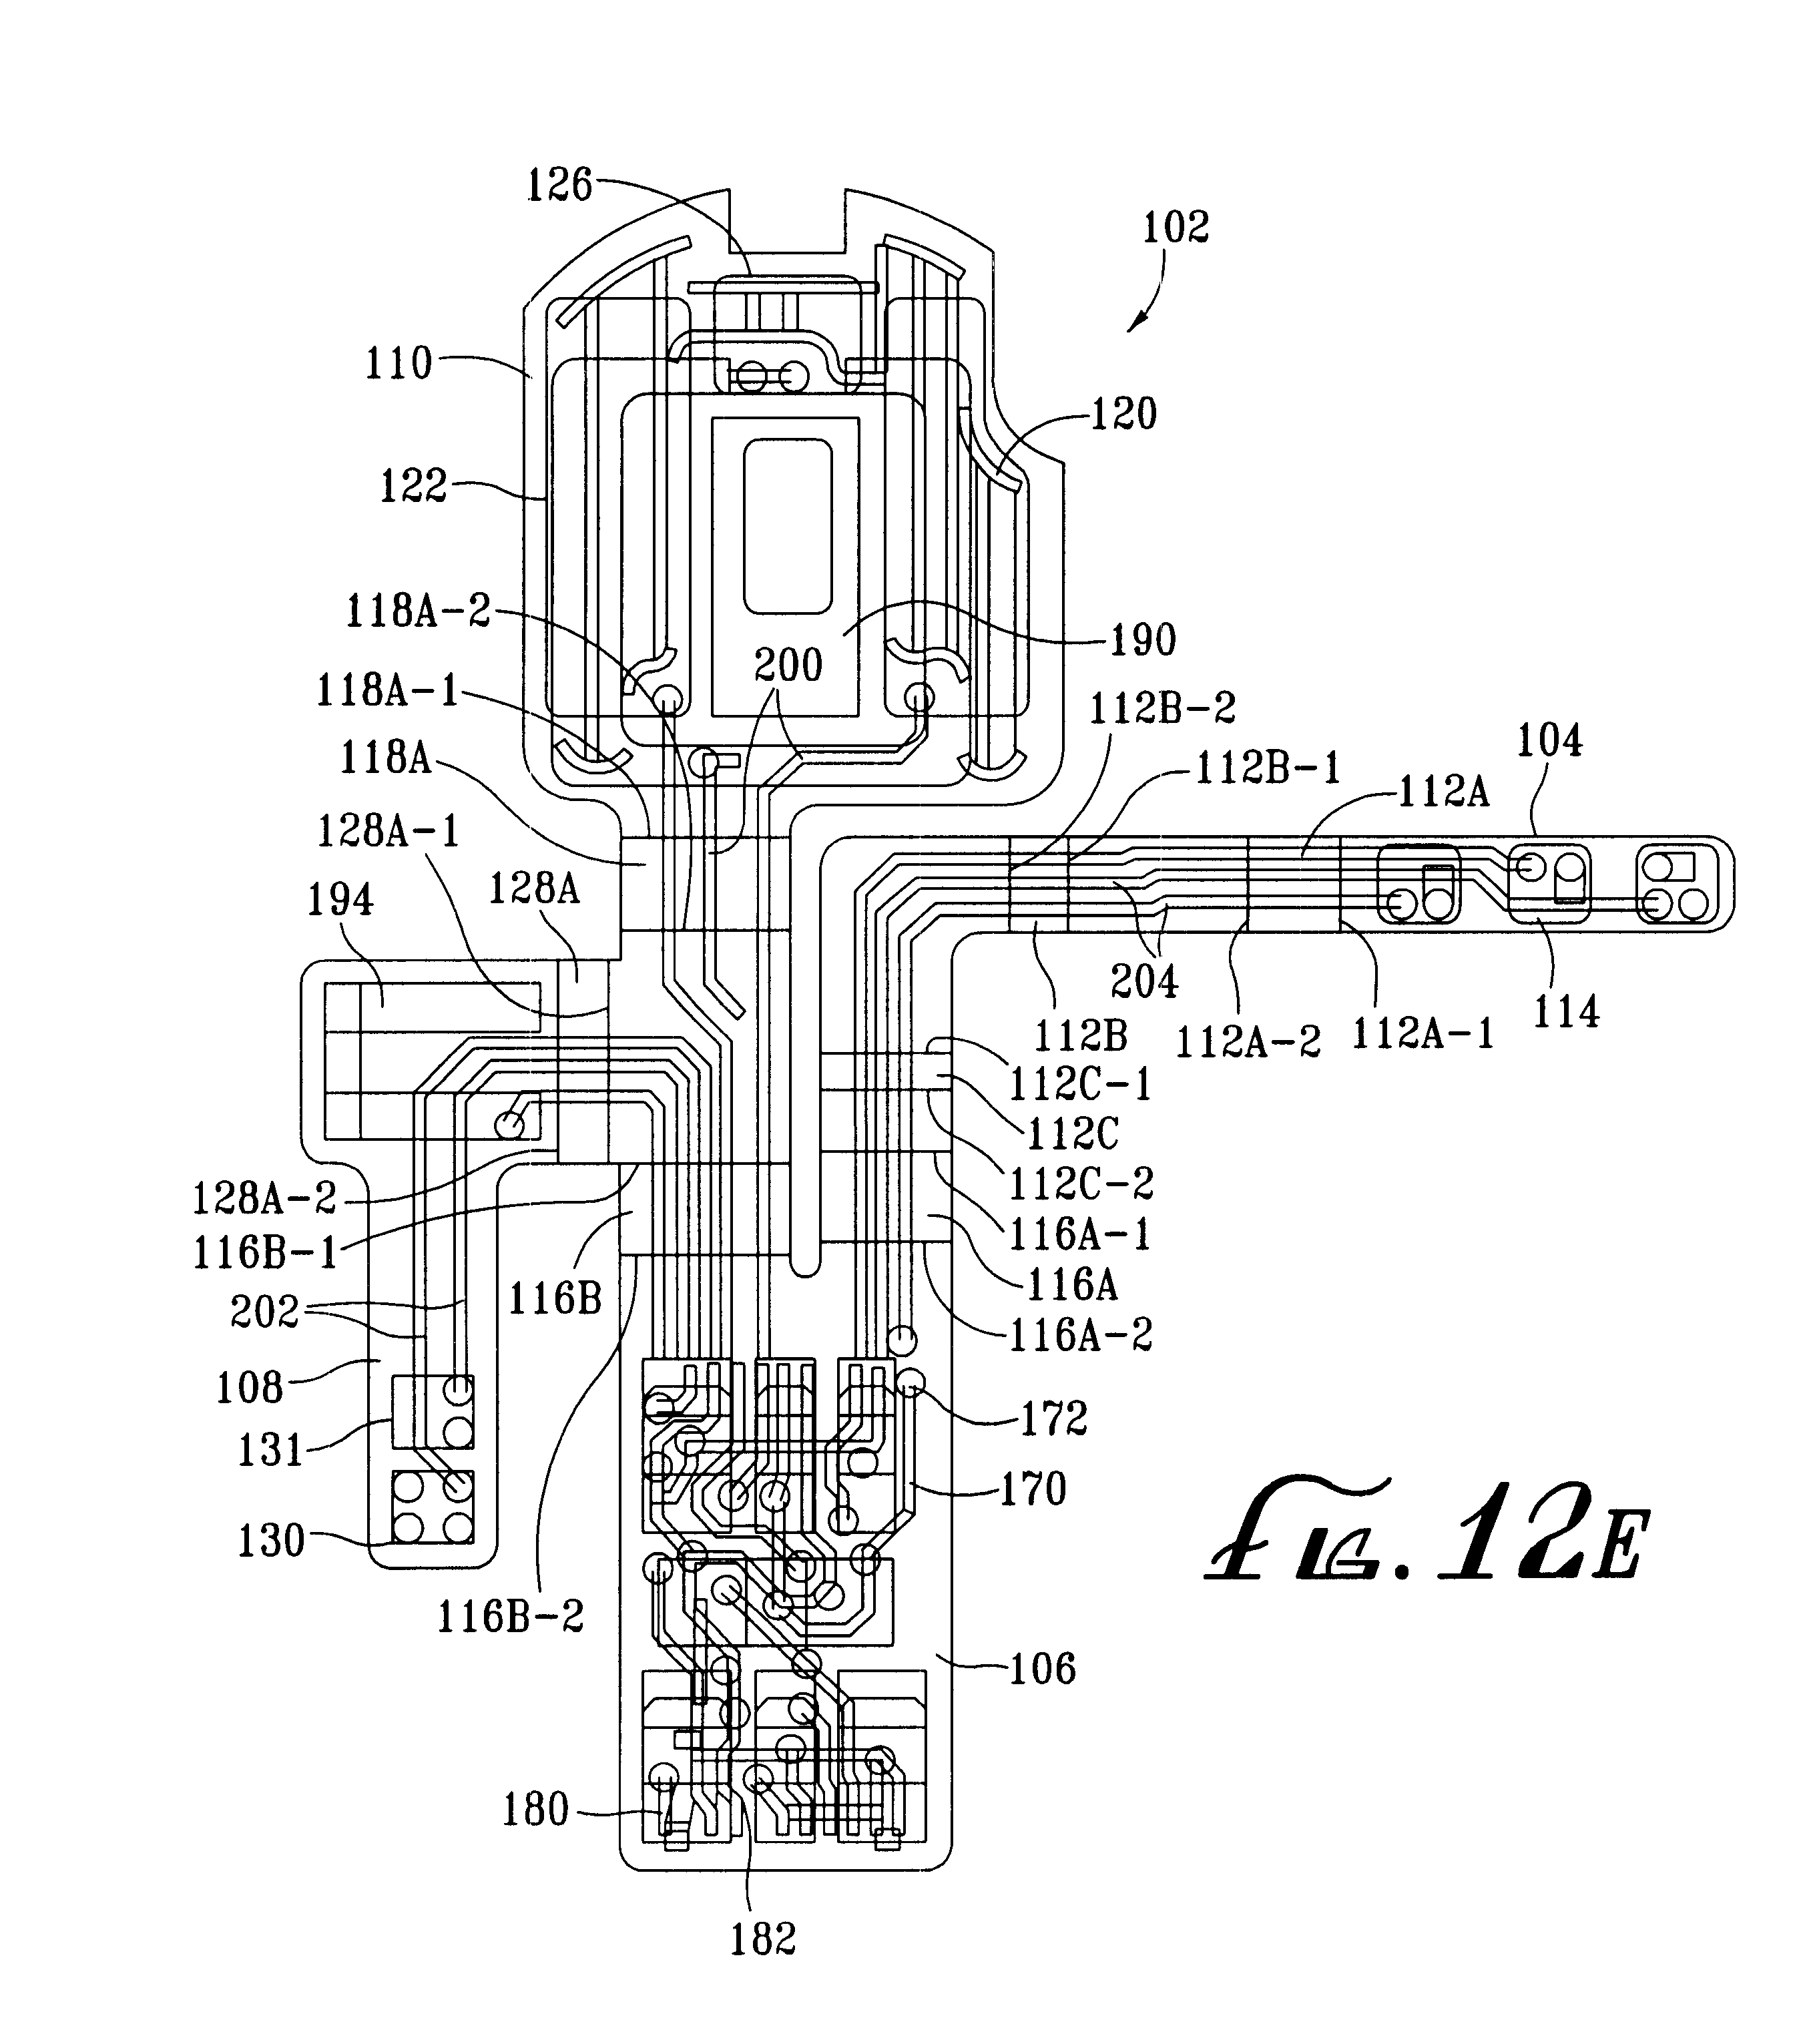 patent us6456720 - flexible circuit board assembly for a hearing aid